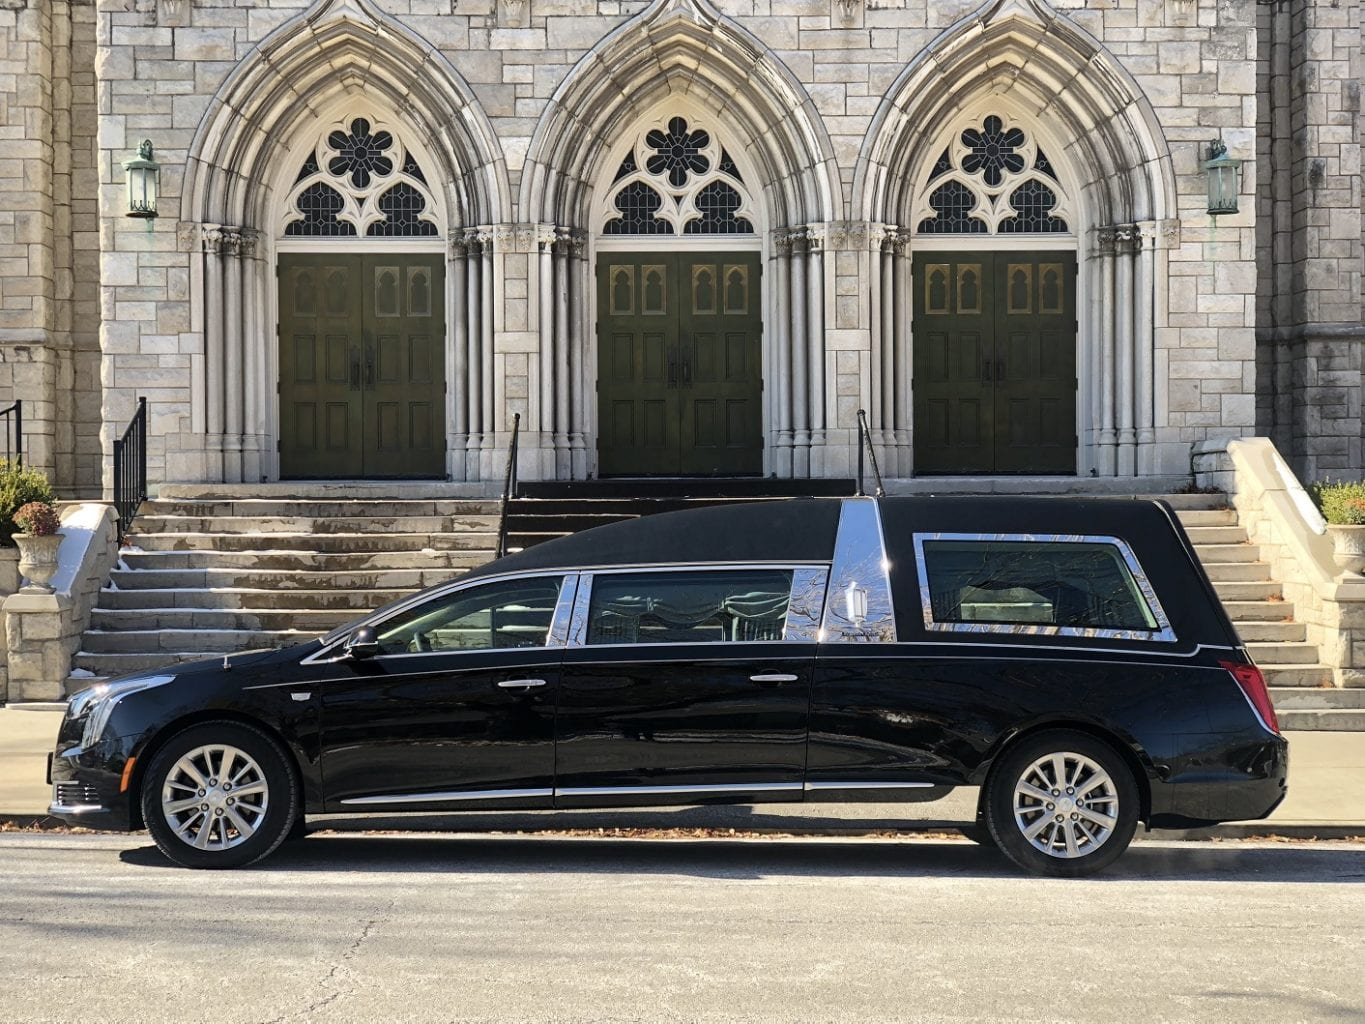 2019 Black S&S Olympian Funeral Hearse 1